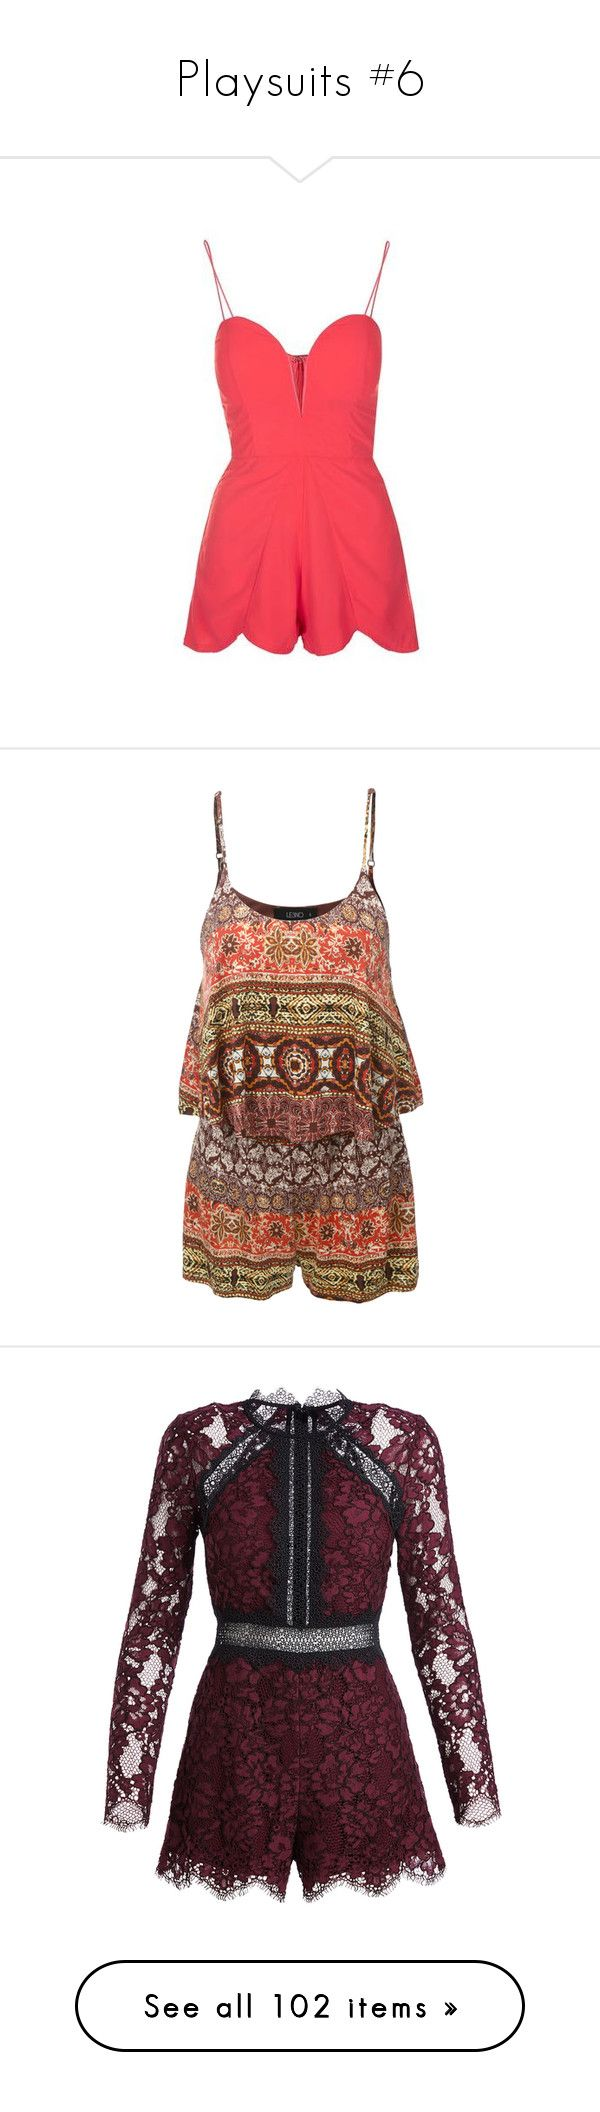 """""""Playsuits #6"""" by xxheystylessxx ❤ liked on Polyvore featuring jumpsuits, rompers, romper, coral, red romper, topshop rompers, chiffon romper, topshop romper, playsuit romper and brown romper"""